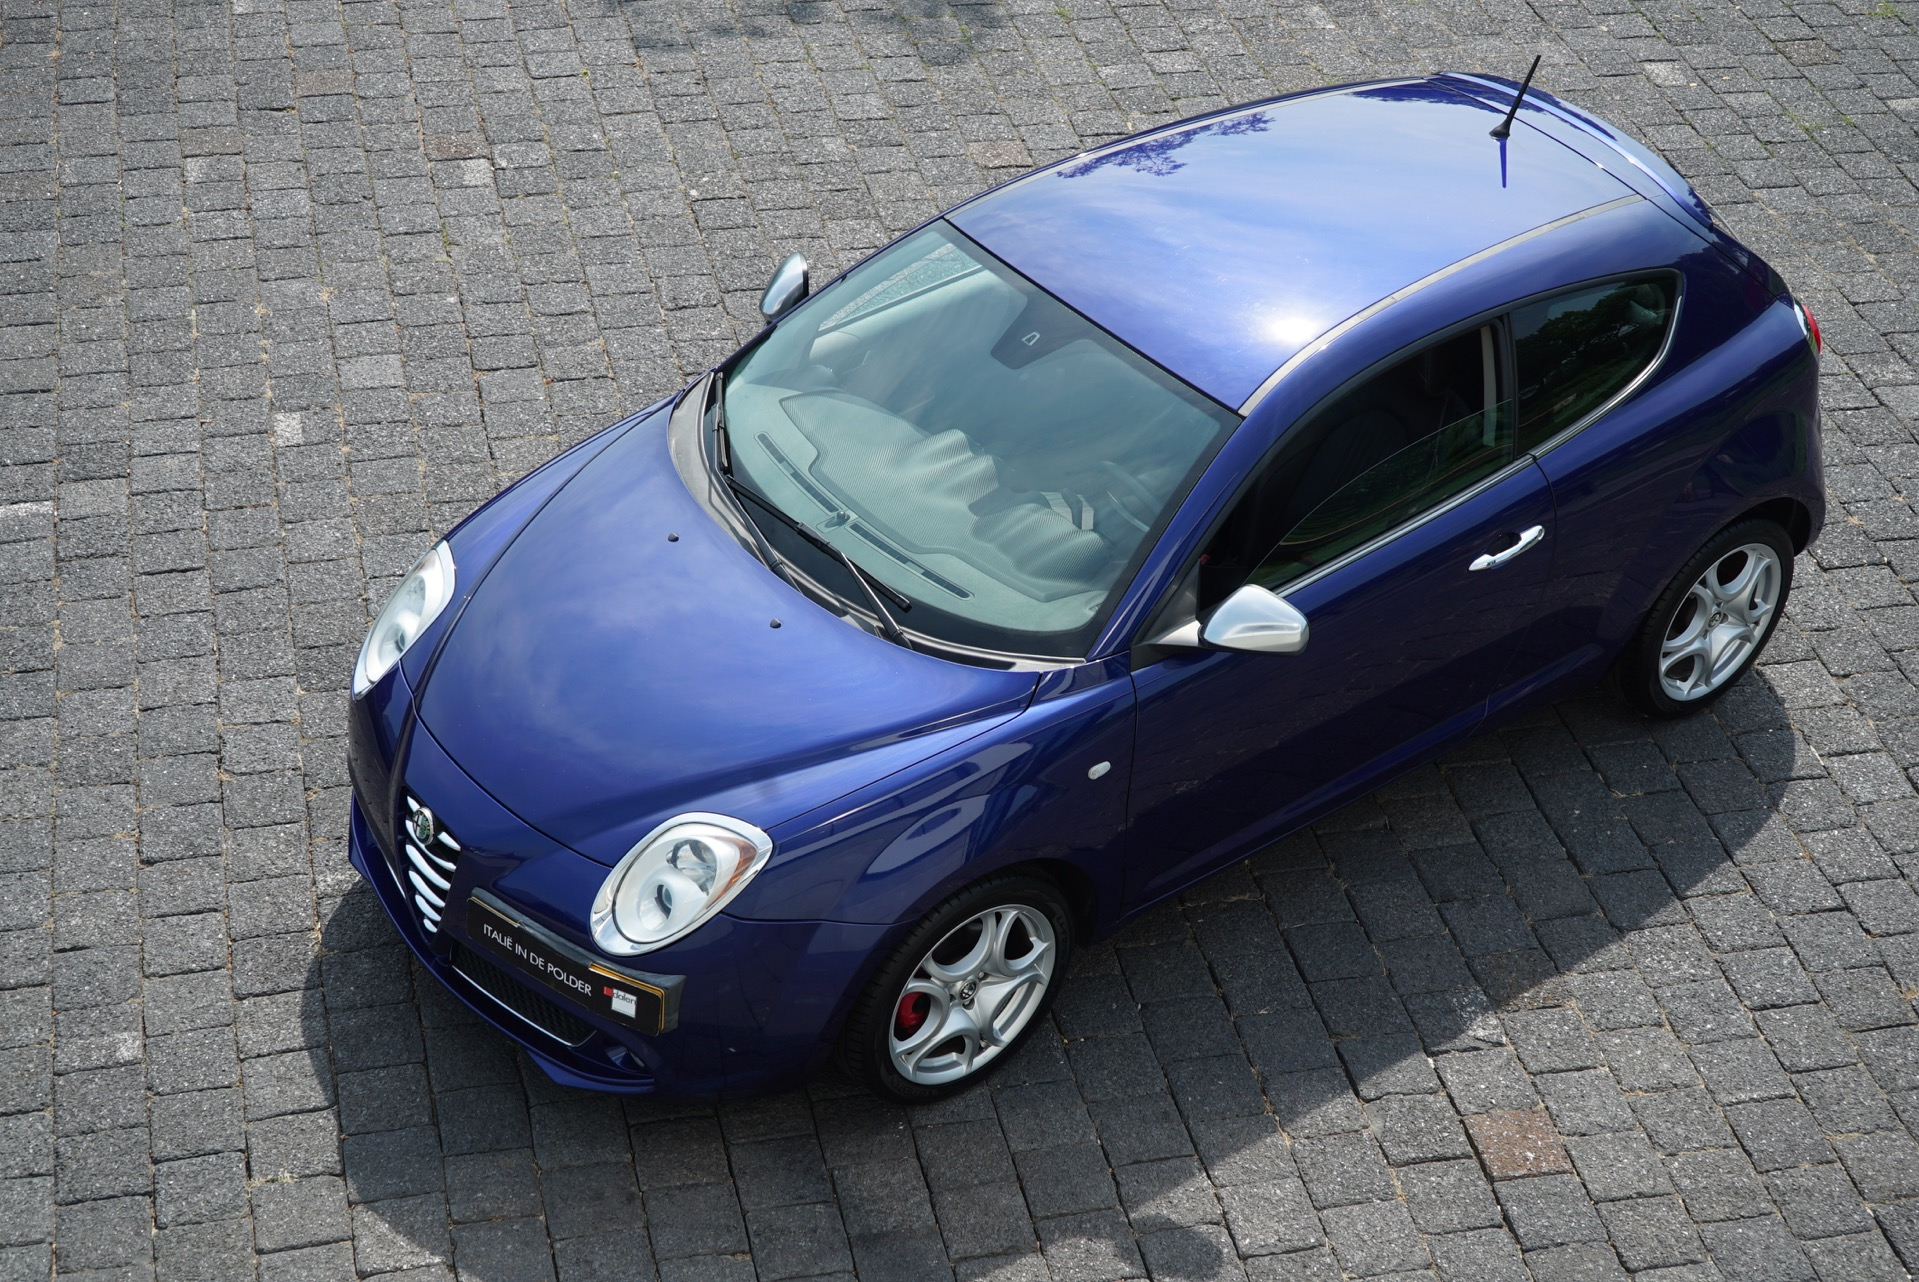 ALFA ROMEO MITO 1.4 TURBO MULTIAIR 135PK DISTINCTIVE